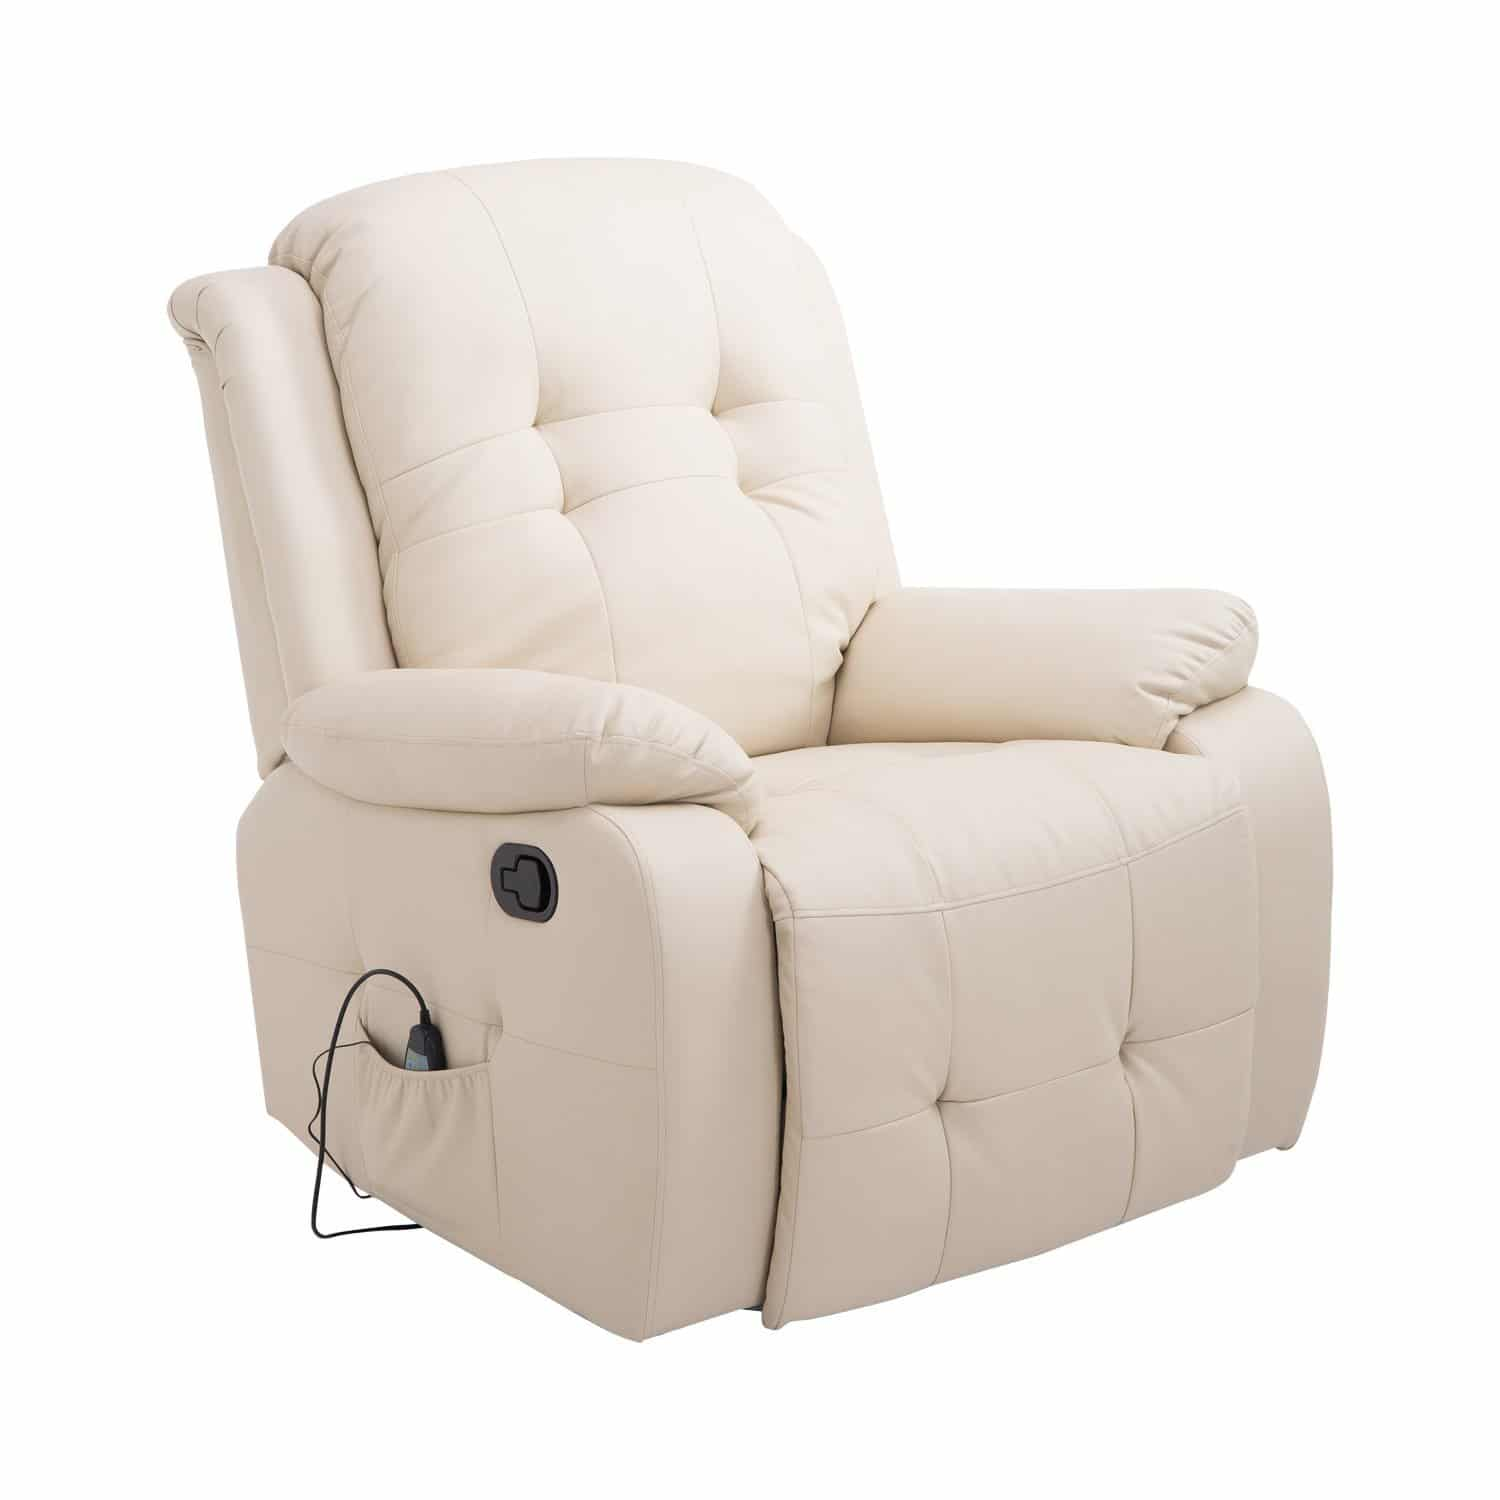 Top Rated Massage Chairs Best Recliner Reviews 2018 Top Brands Rating And Comparison